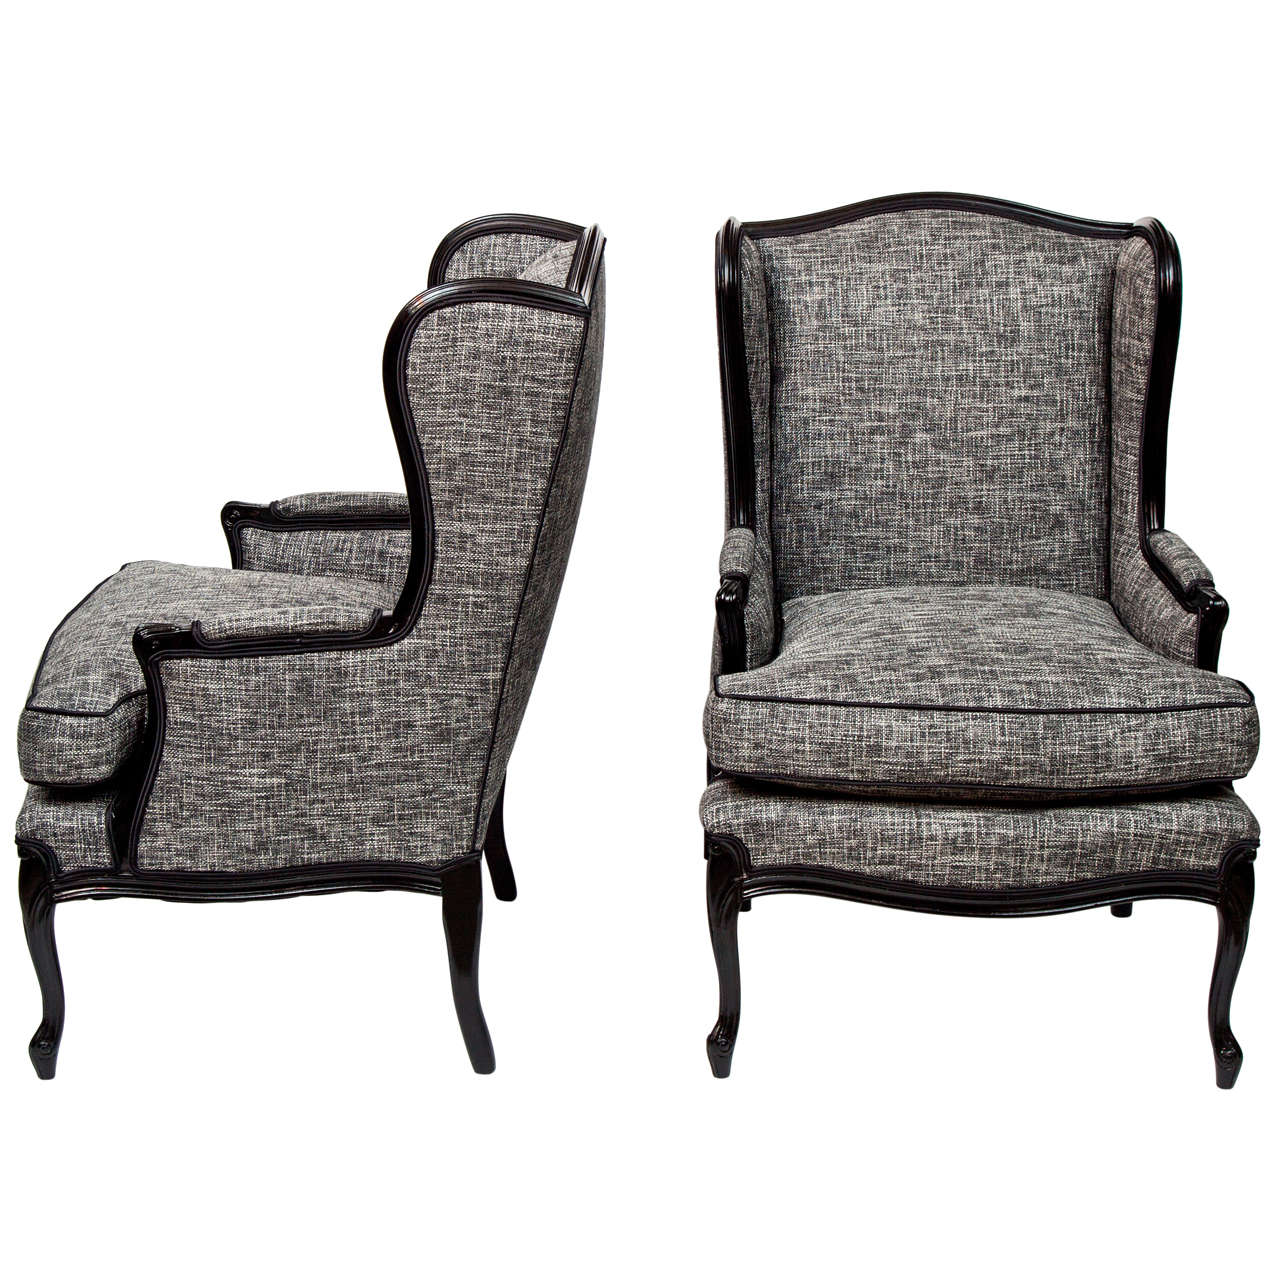 Excellent wing back chair with Solid Strong wood Furniture Design for Dining chair and Living Room Chair Ideas